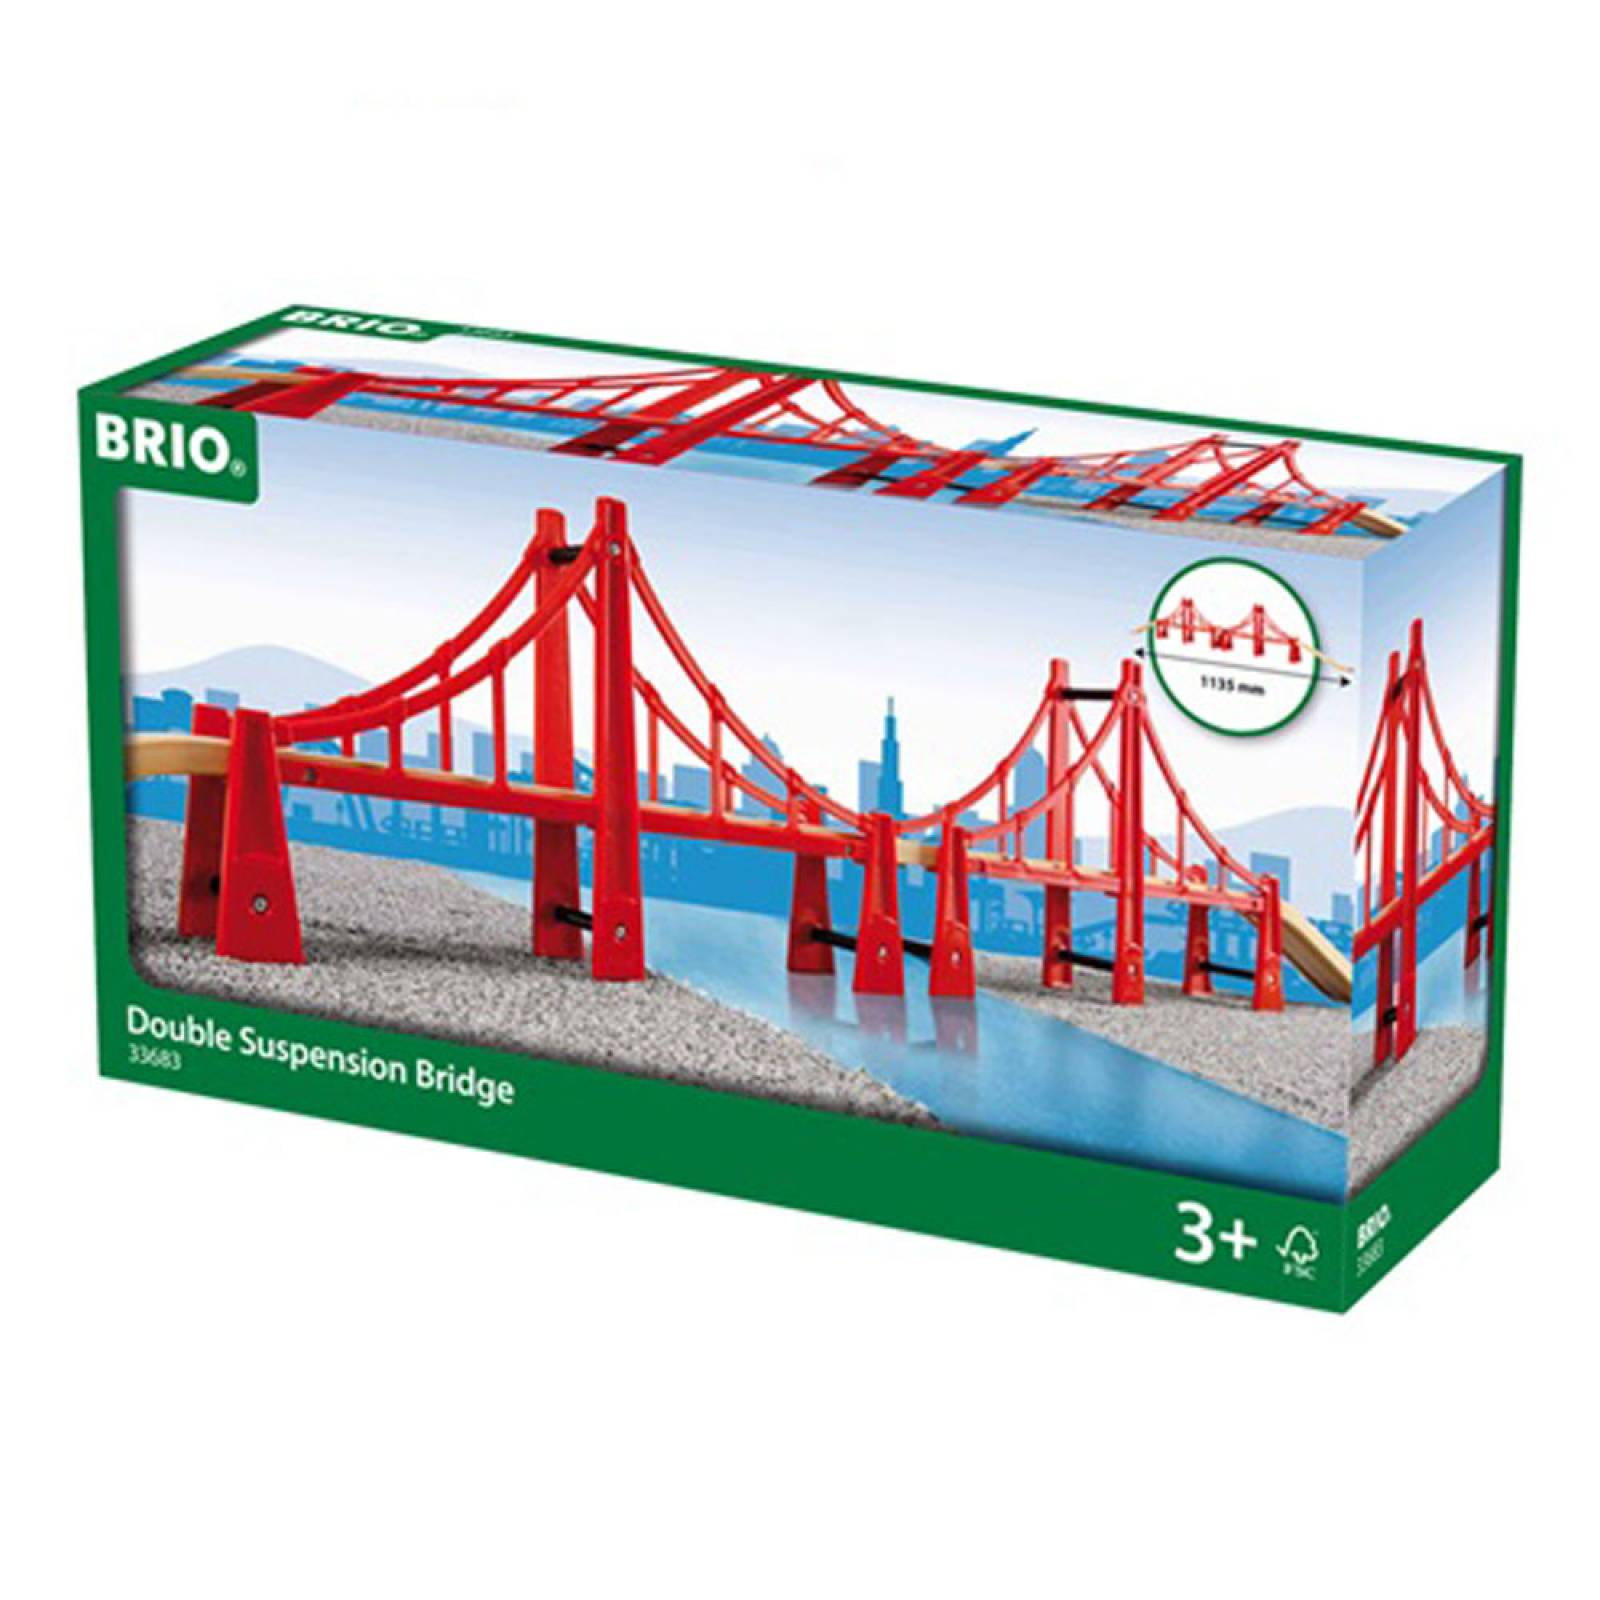 Double Suspension Bridge BRIO Wooden Railway 3+